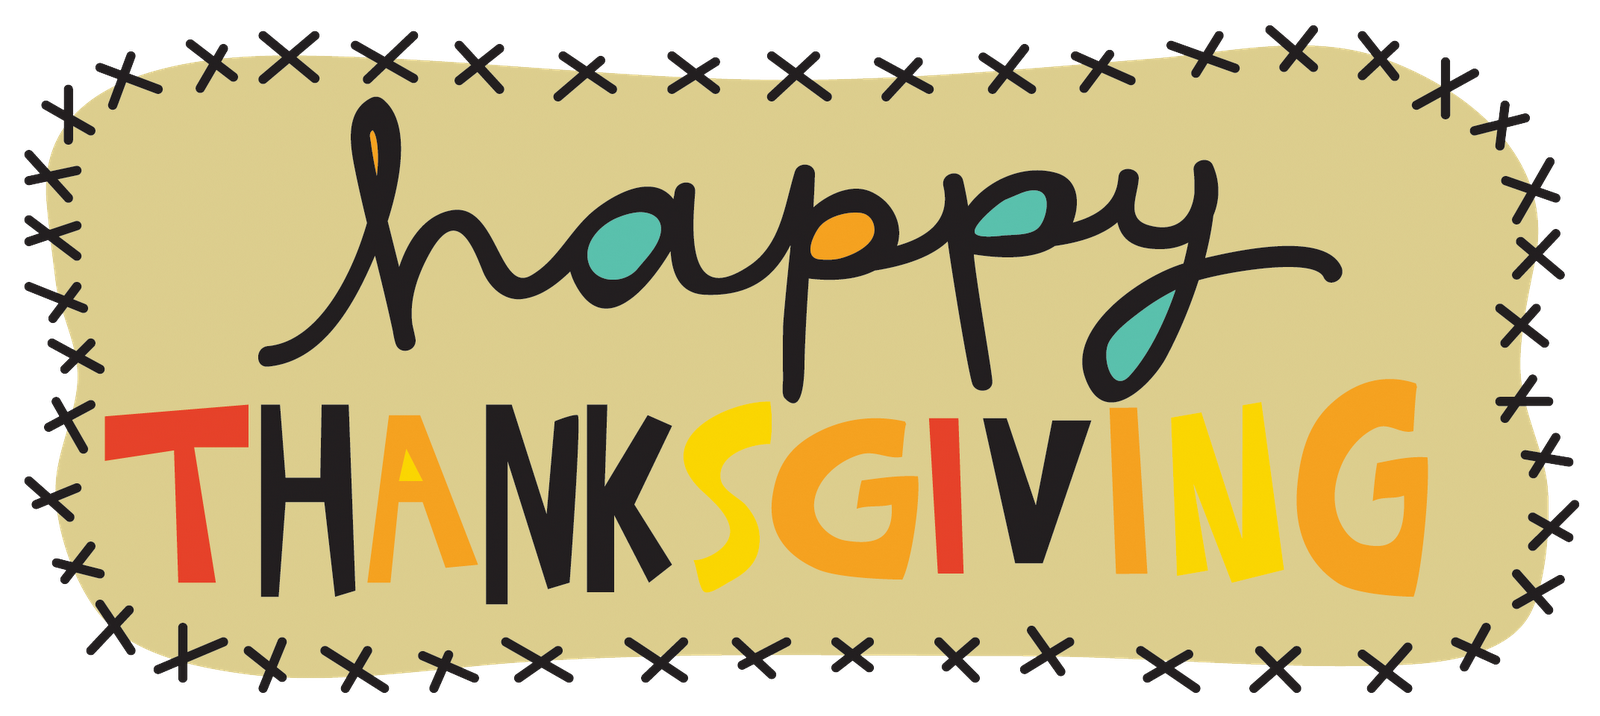 Happy thanksgiving pictures clipart freeuse stock 28+ Collection of Blessed Thanksgiving Clipart | High quality, free ... freeuse stock